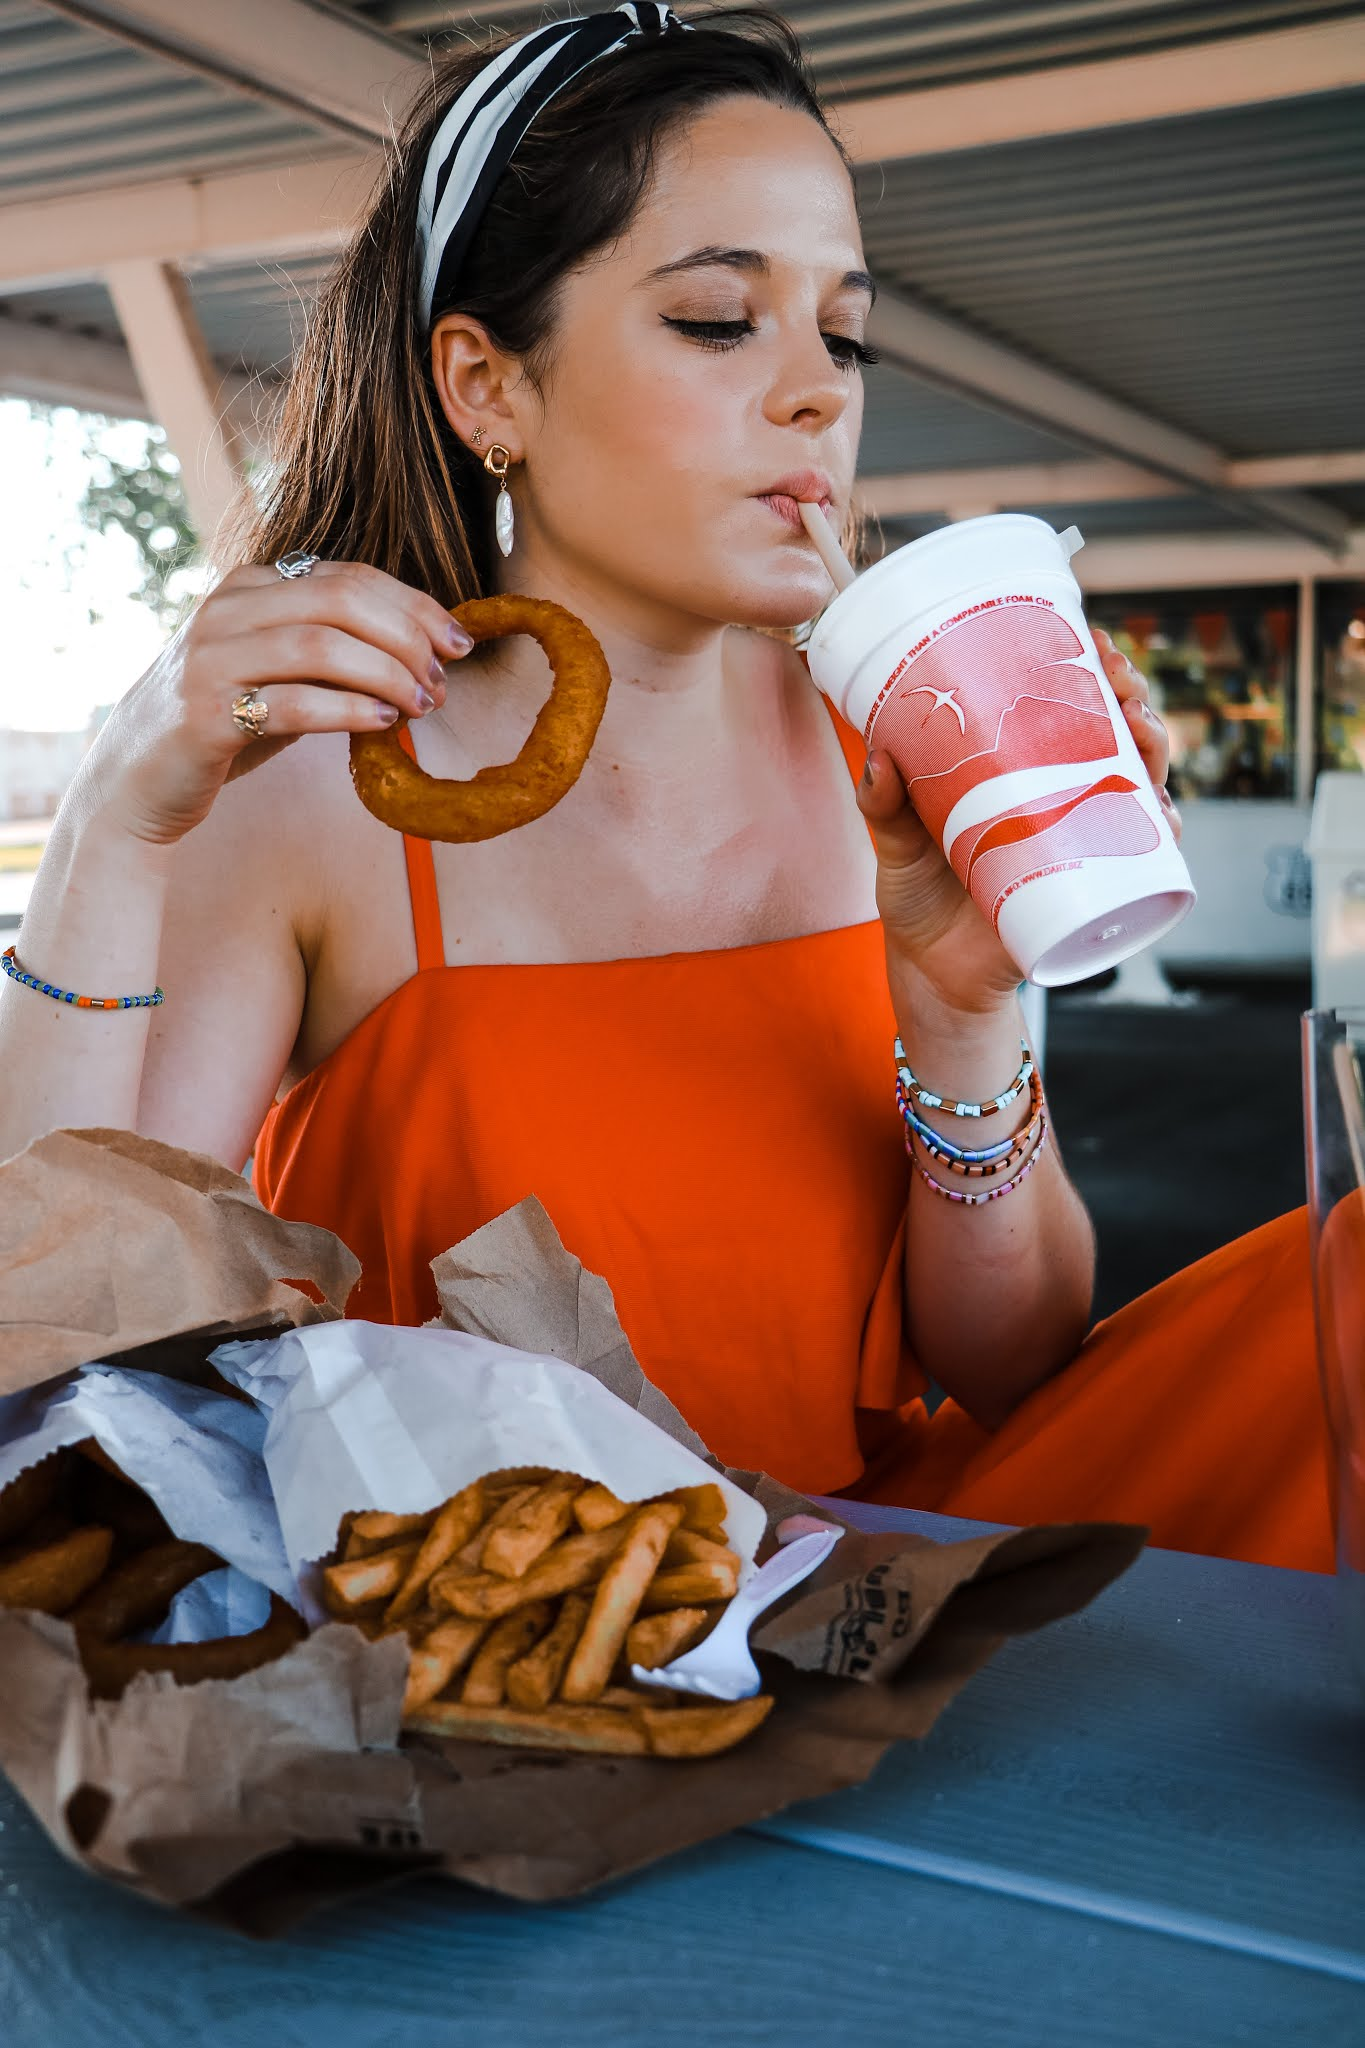 Nyc style influencer, Kathleen Harper eating fast food during a photo shoot.